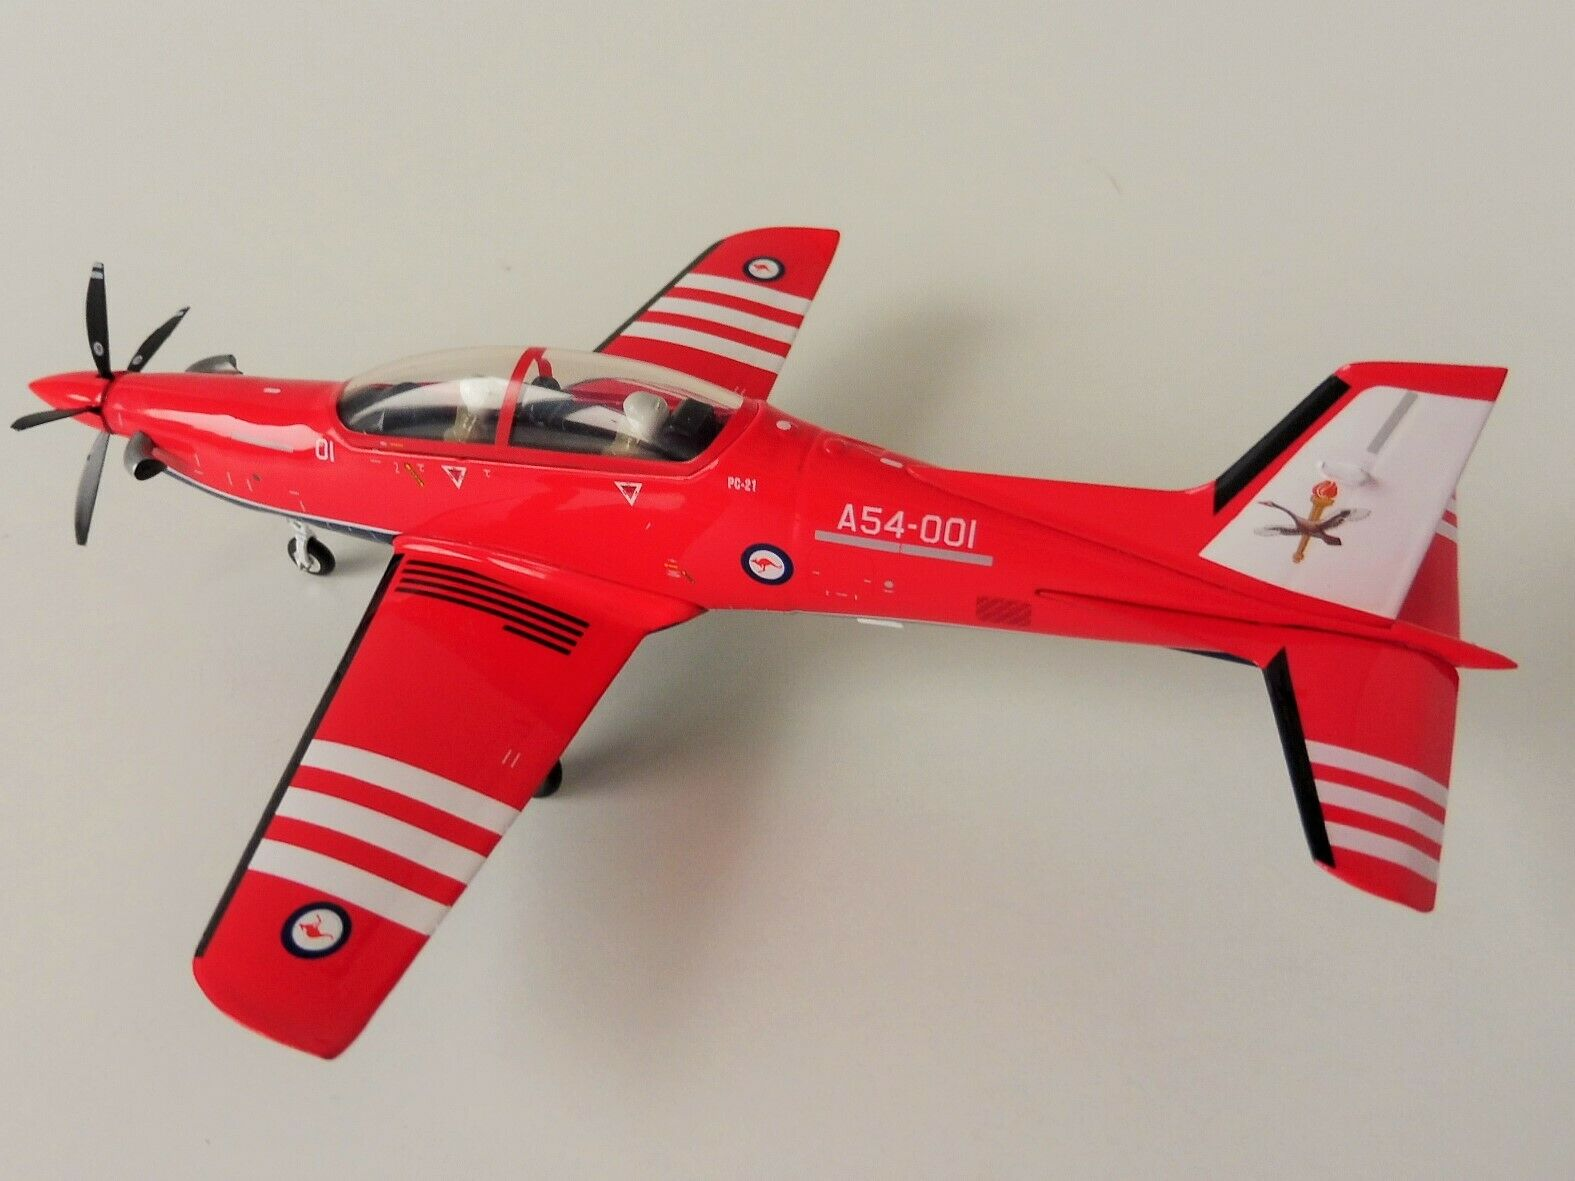 Pilatos pc-21 Royal Australian Air Force 1 72 Herpa 580342 Training School